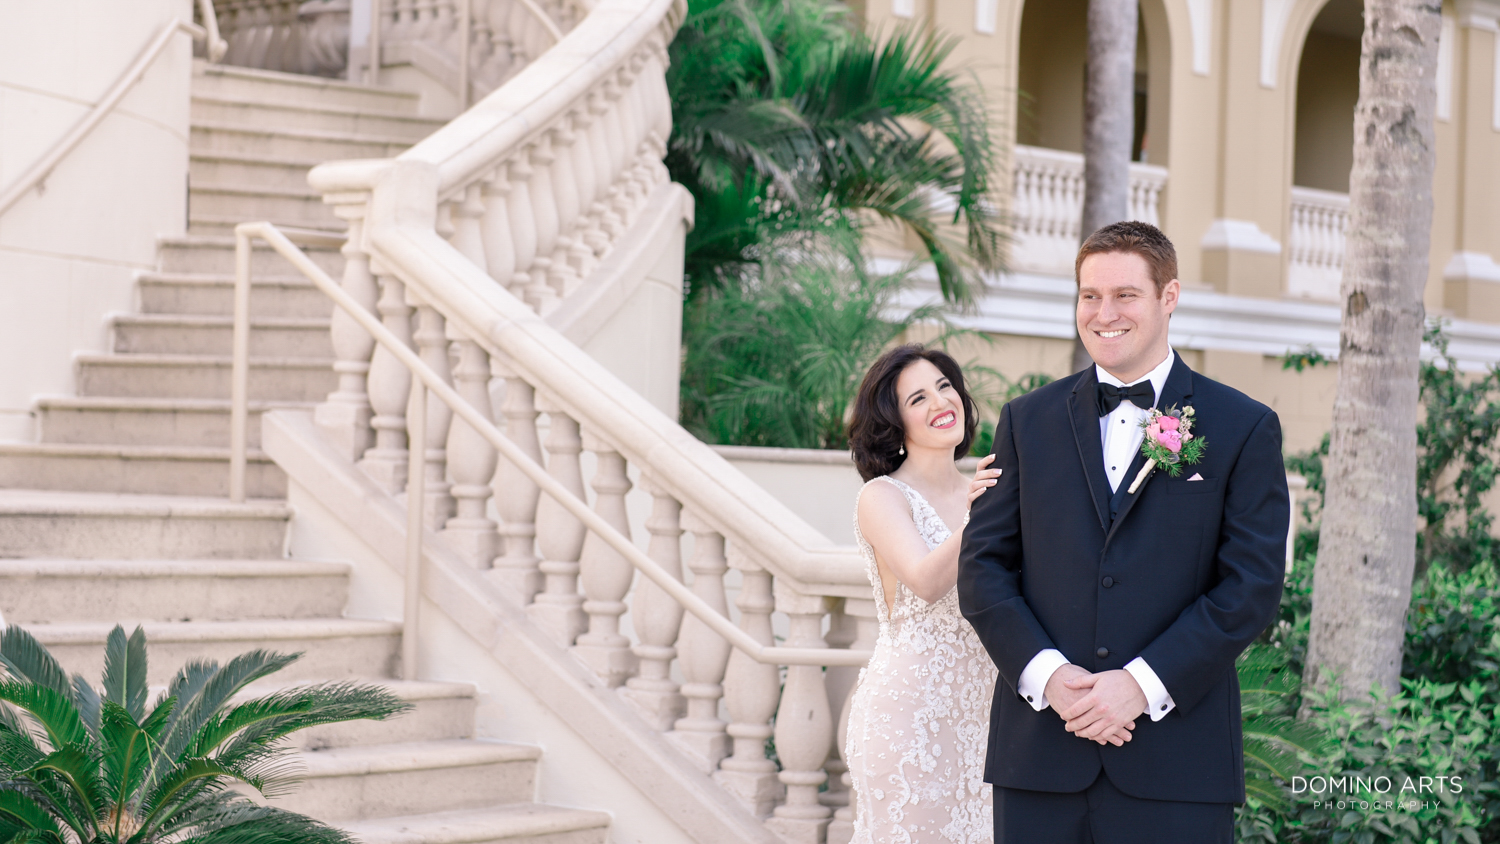 First look of a bride and groom at The Ritz Carlton Sarasota